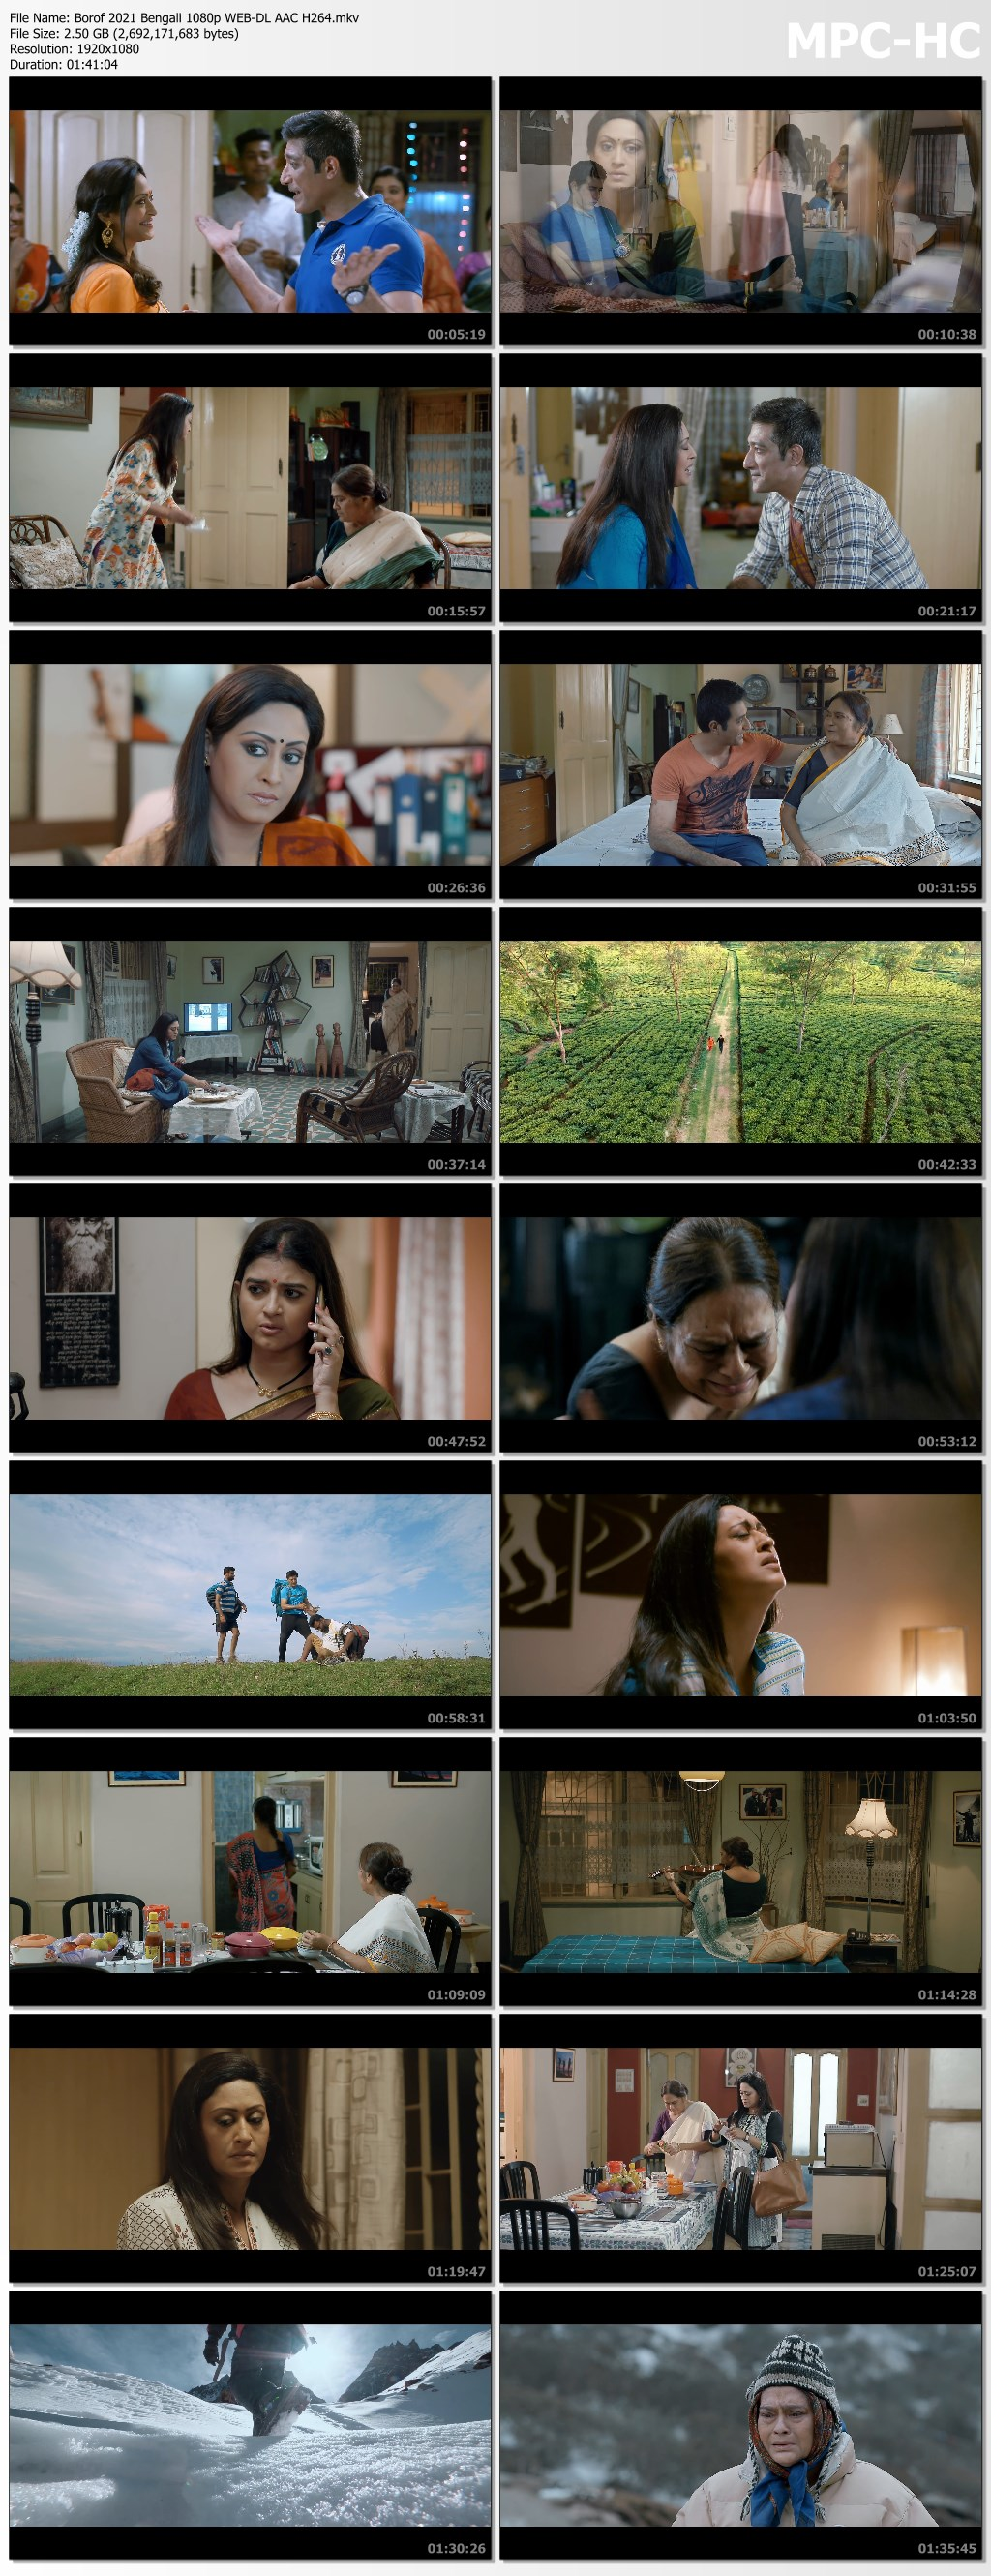 Borof 2021 Bengali 1080p WEB DL AAC H264.mkv thumbs